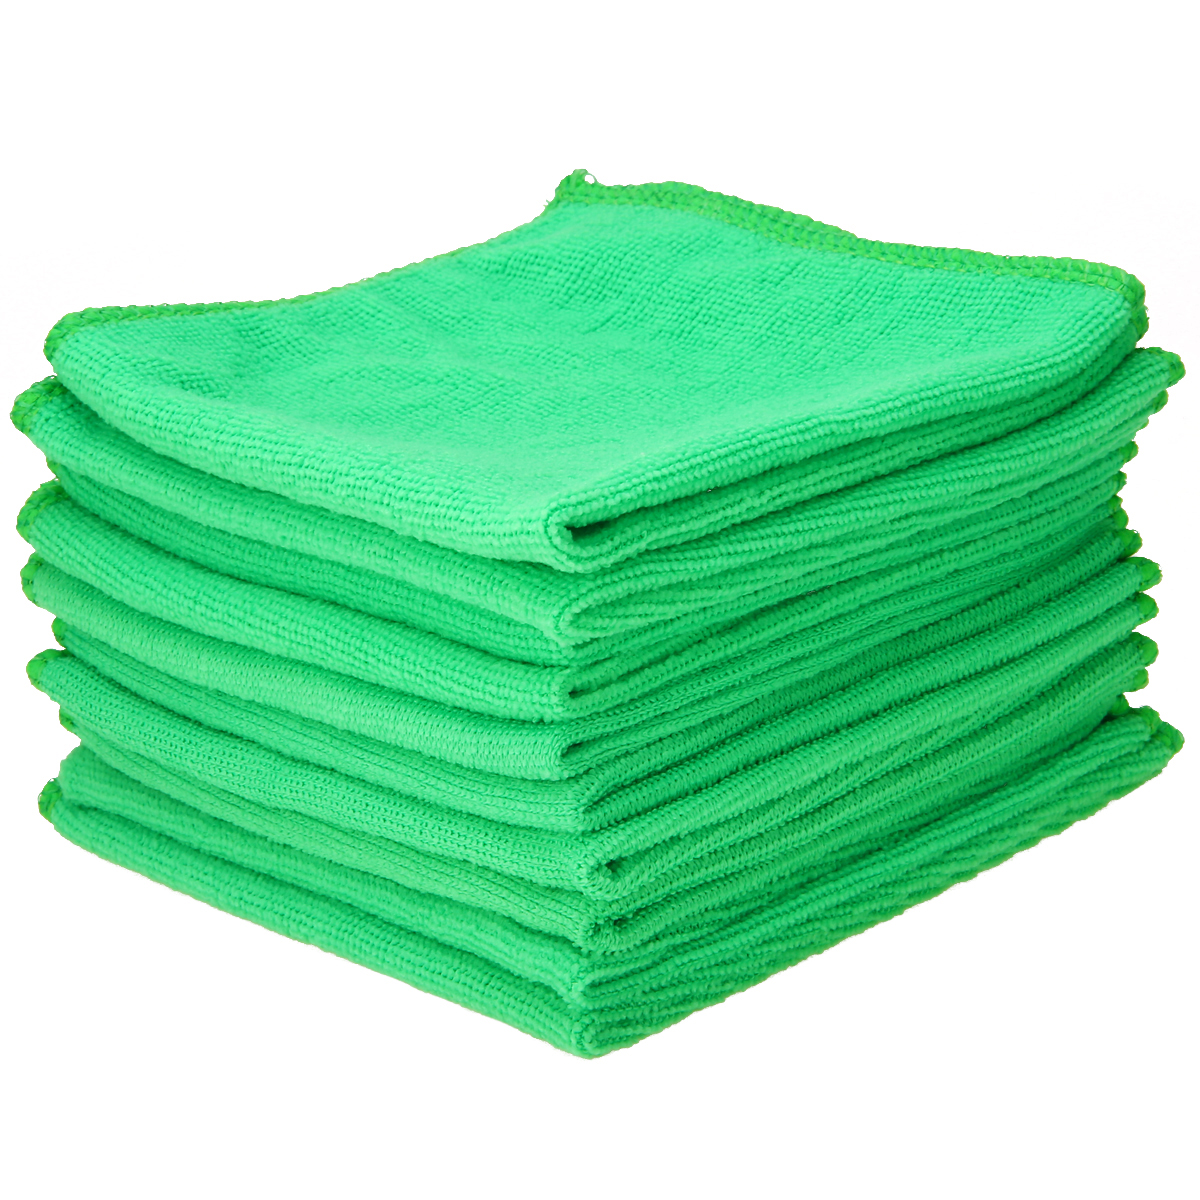 Image 3 - Mayitr 1Set 10X Green Microfiber Cleaning Auto Car Detailing Soft Microfiber Cloths Wash Towel Duster Home Clean 25*25CM-in Sponges, Cloths & Brushes from Automobiles & Motorcycles